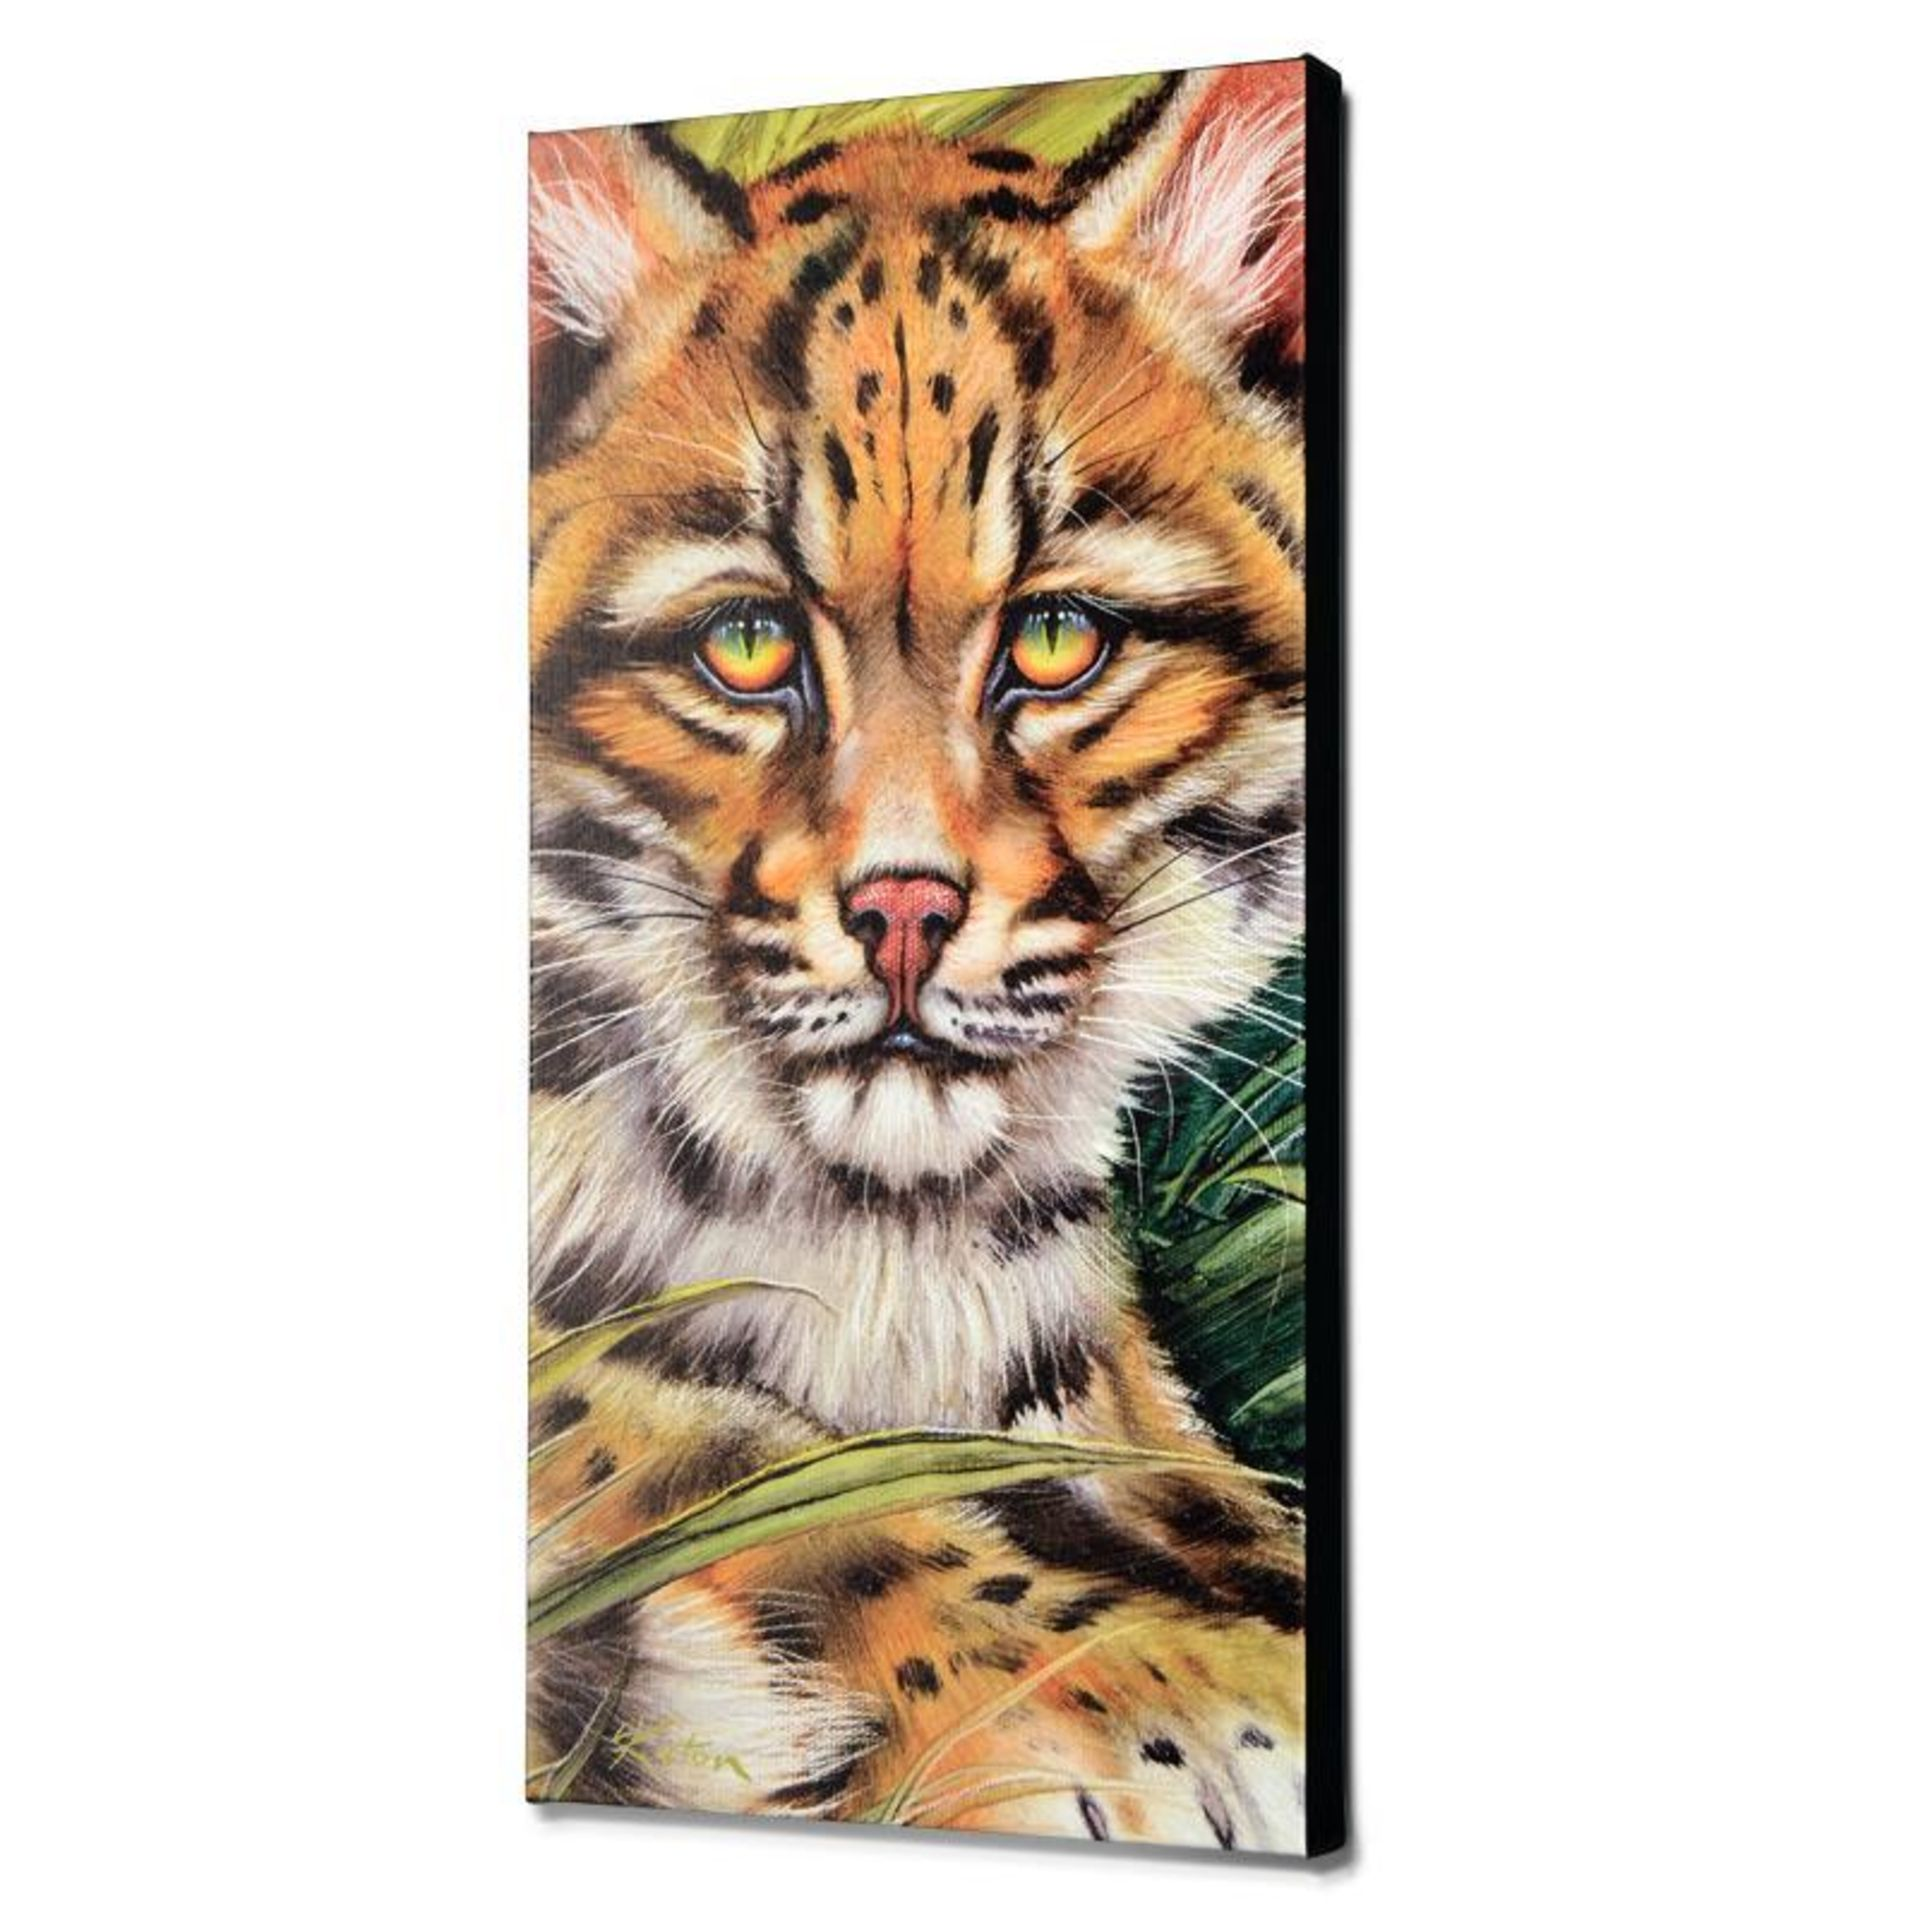 """Ocelot Eyes"" Limited Edition Giclee on Canvas by Martin Katon, Numbered and Han - Image 2 of 2"